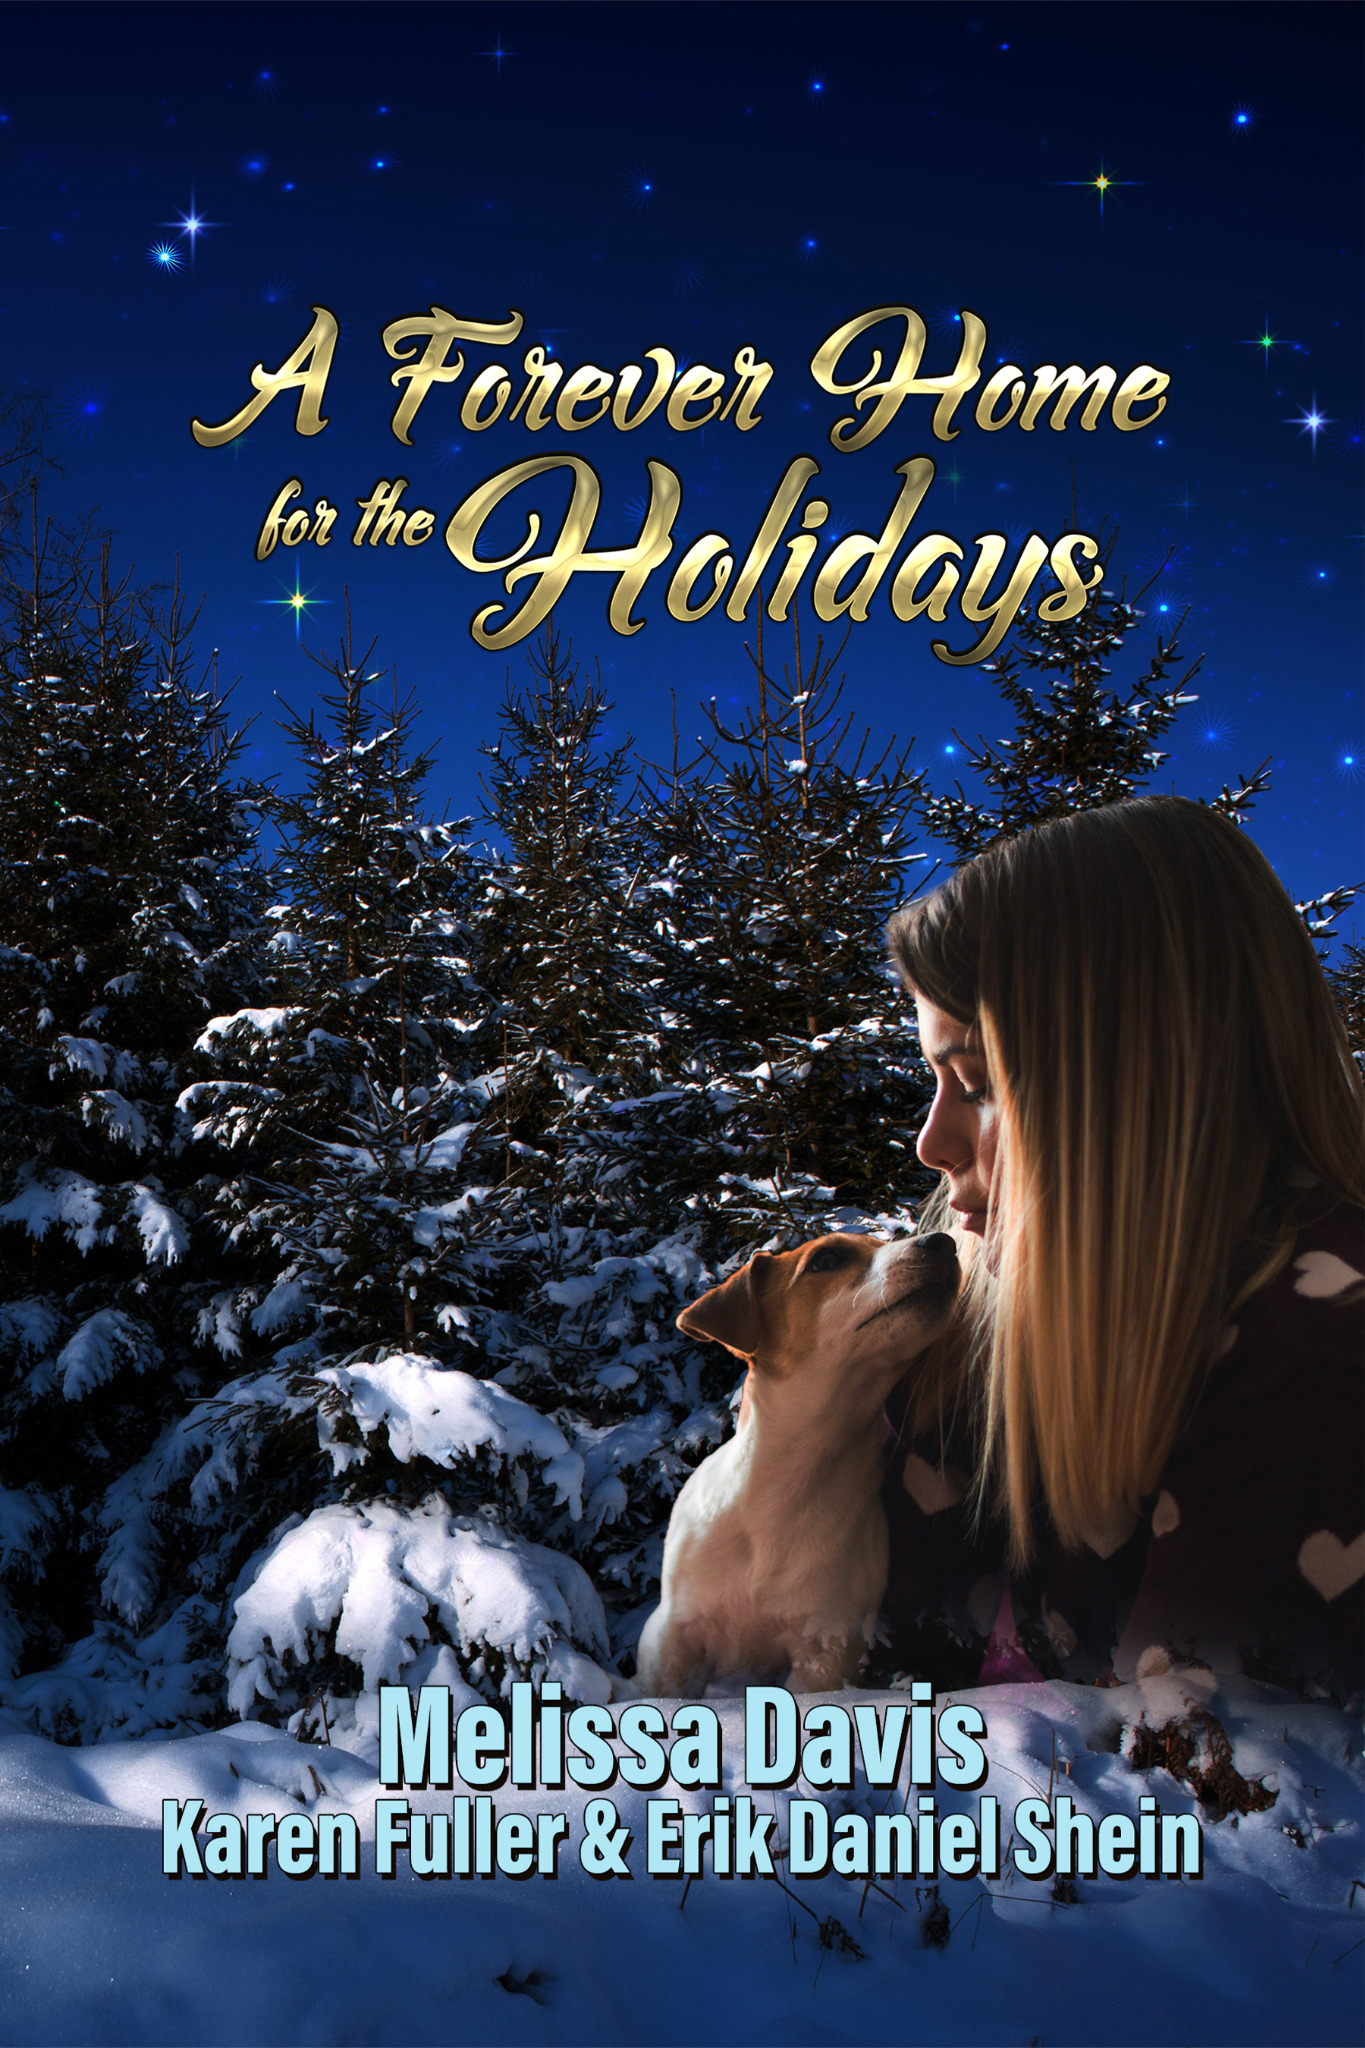 A Forever Home for the Holidays